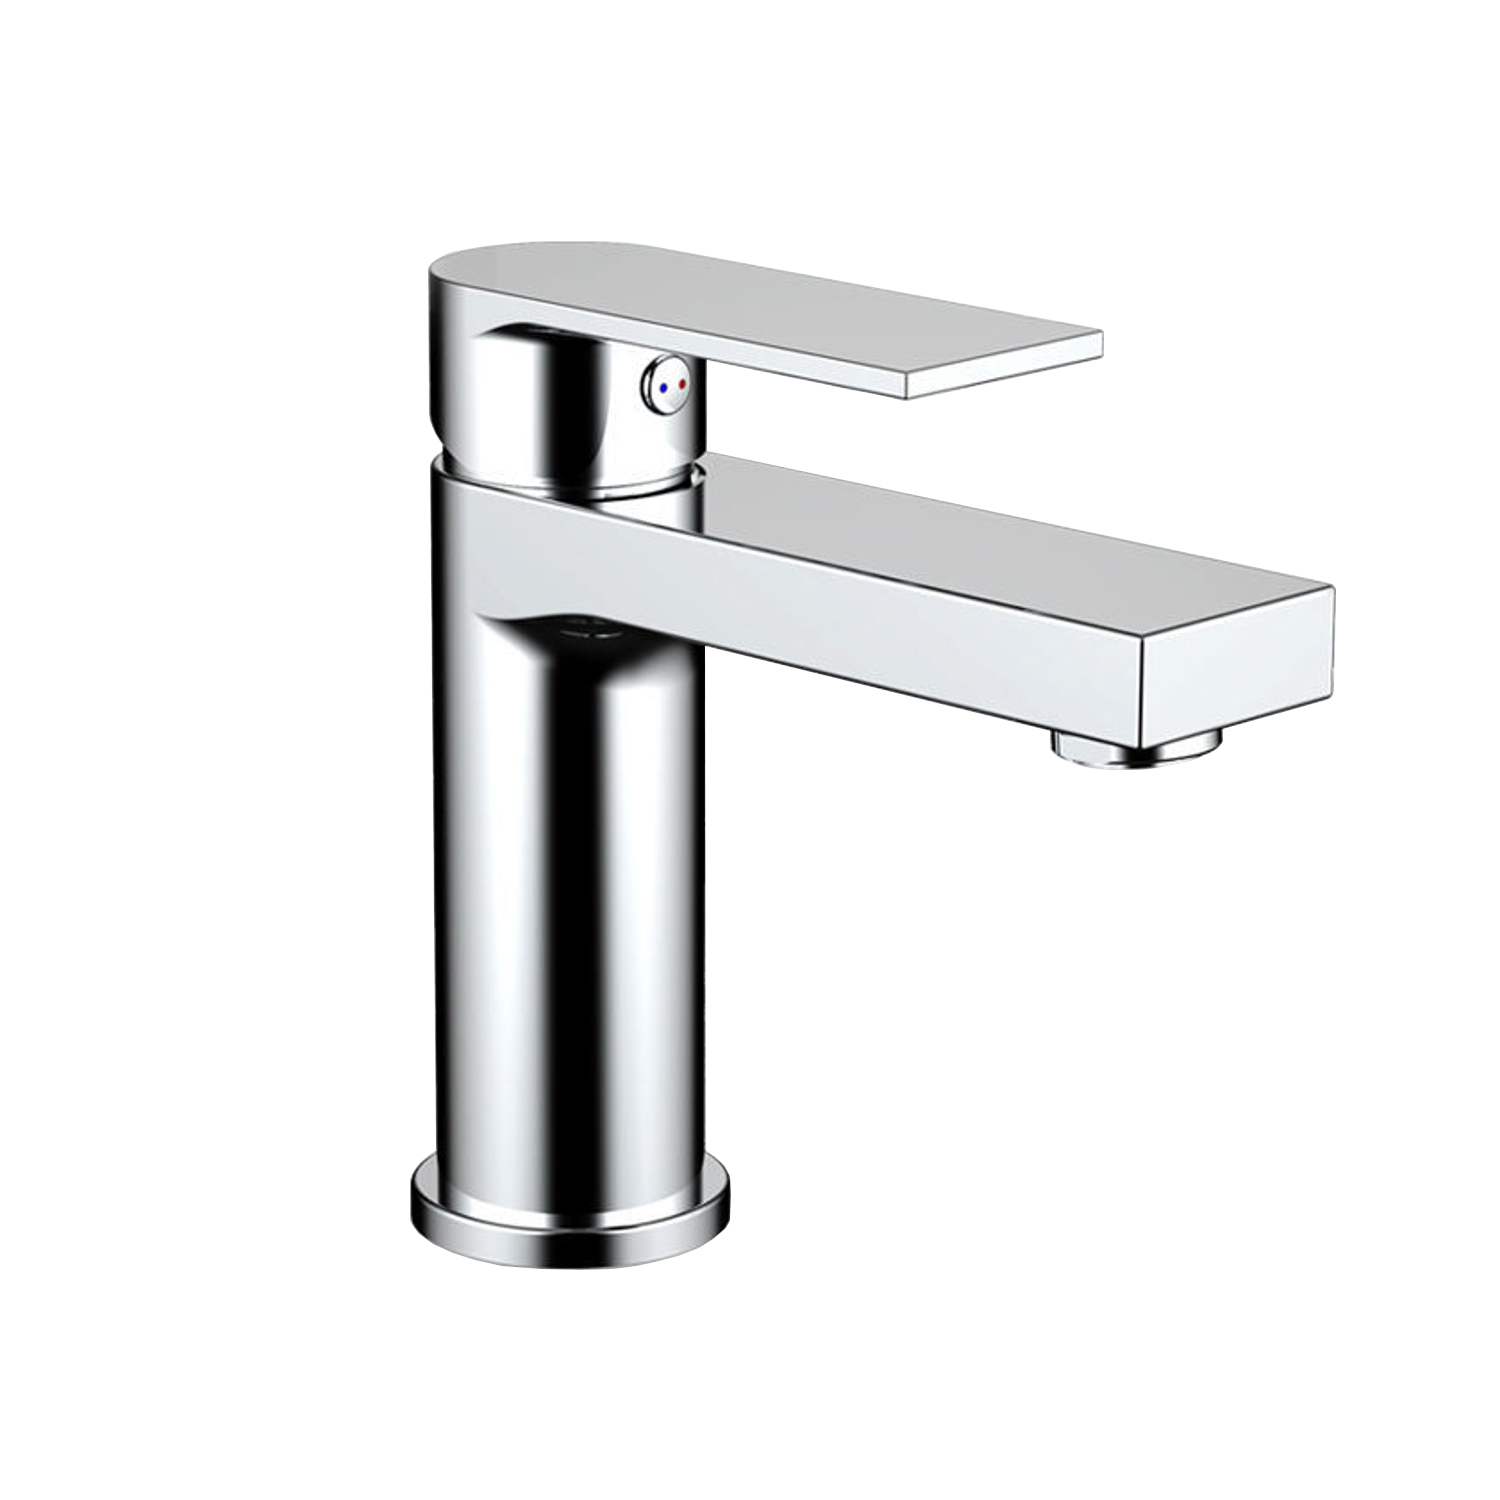 EVFT1336BN A Main - Eviva Pure Single Handle Bathroom Sink Faucet in Brushed Nickel